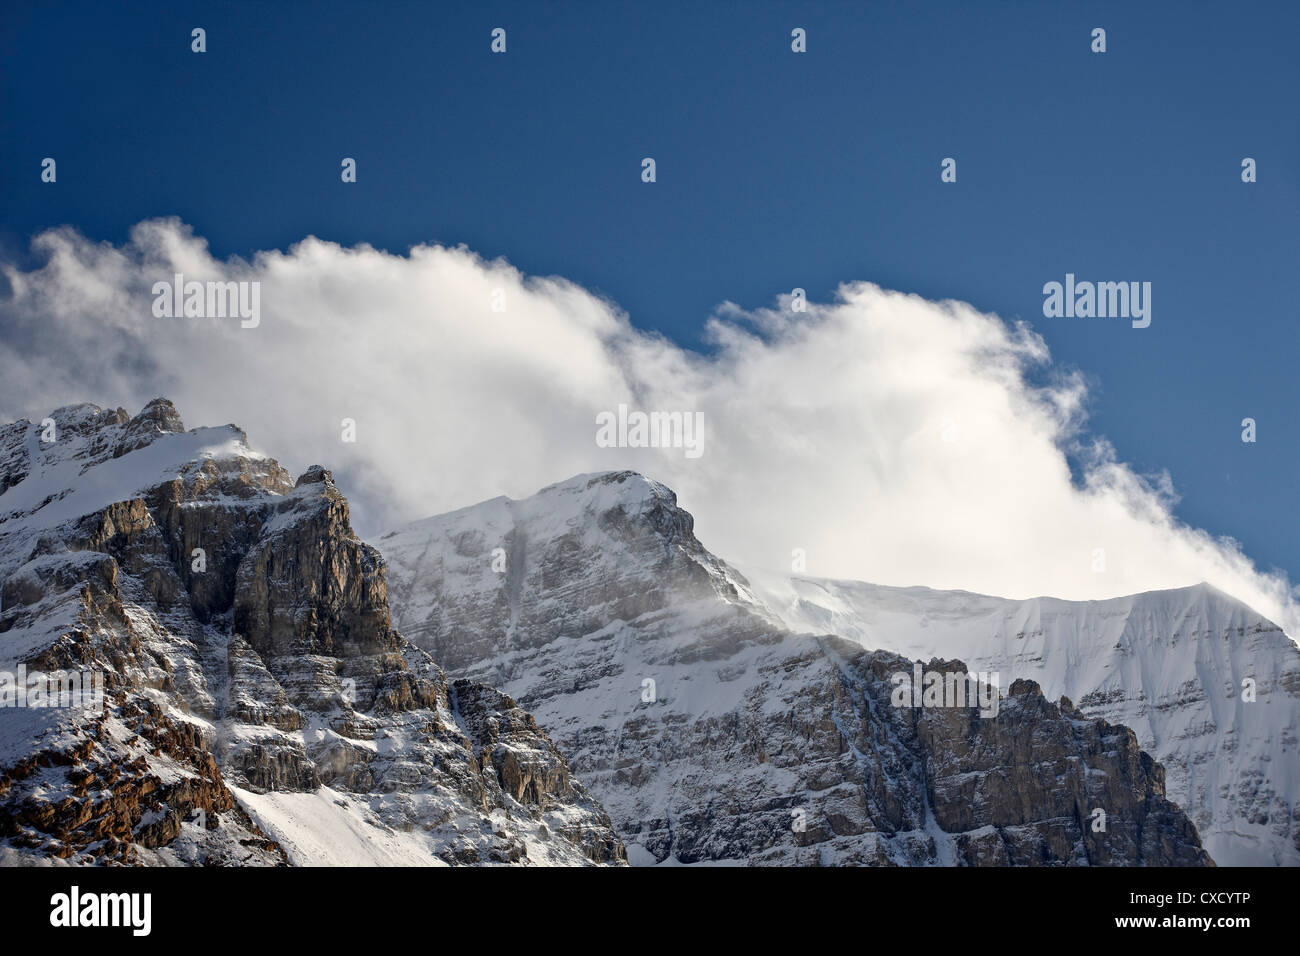 Craggy mountains with clouds and snow cover, Jasper National Park, UNESCO World Heritage Site, Alberta, Canada, - Stock Image